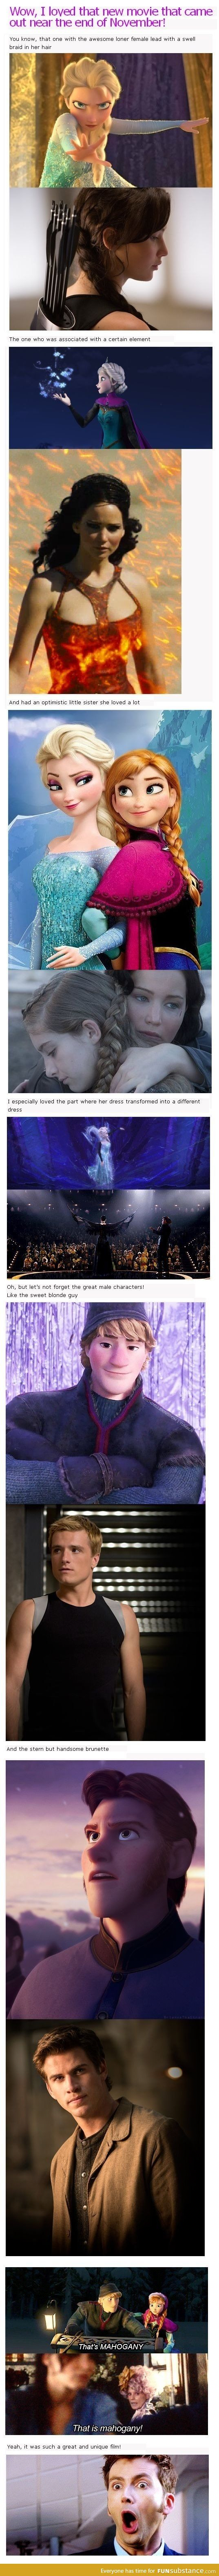 Haven't seen Frozen or Caching Fire. But this is still Loled. Plus nice DW reference even tho I don't watch that either.